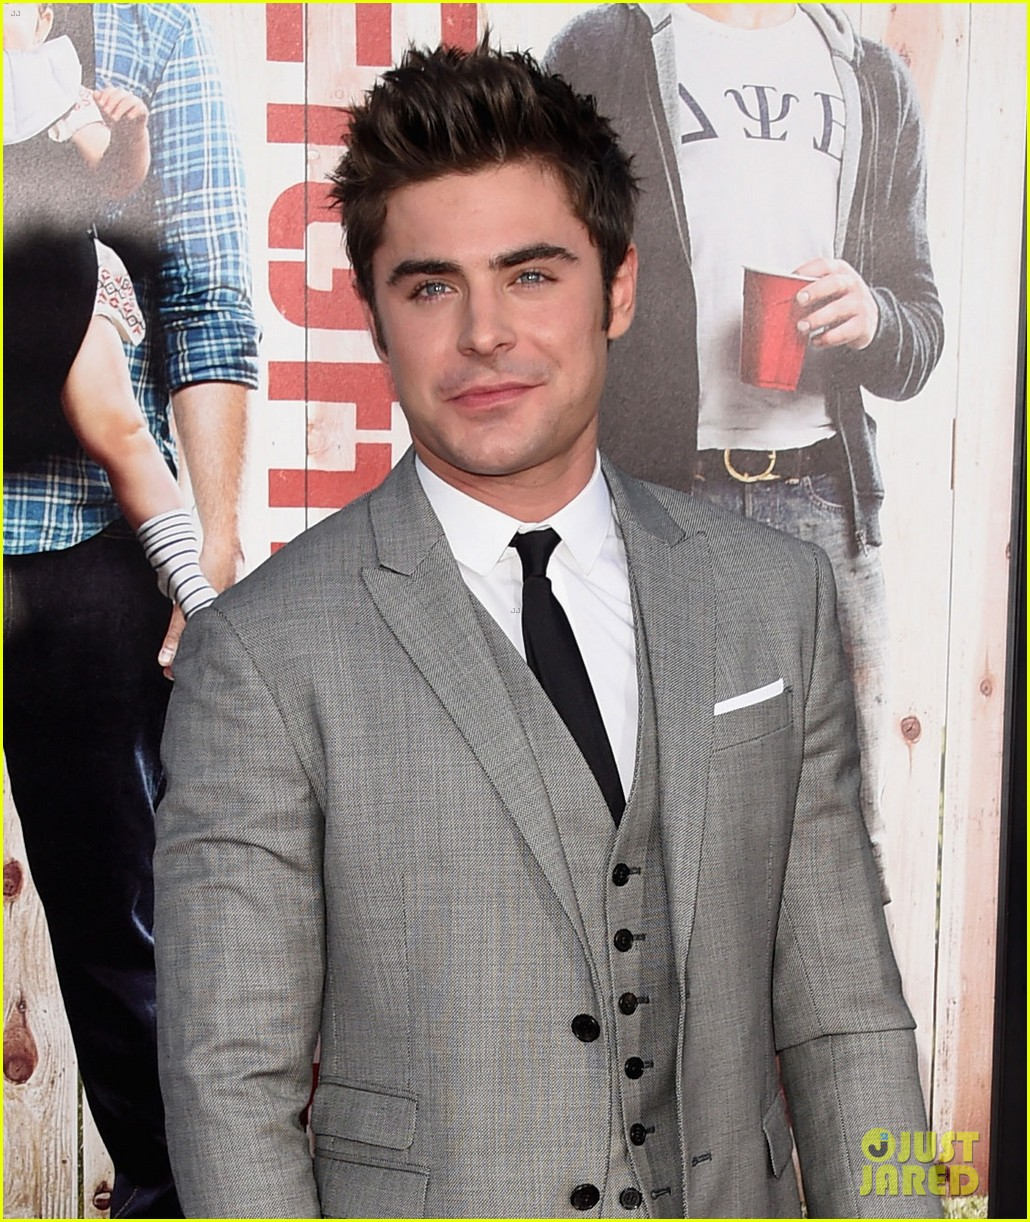 zac efron on star wars role there are irons in the fire 06